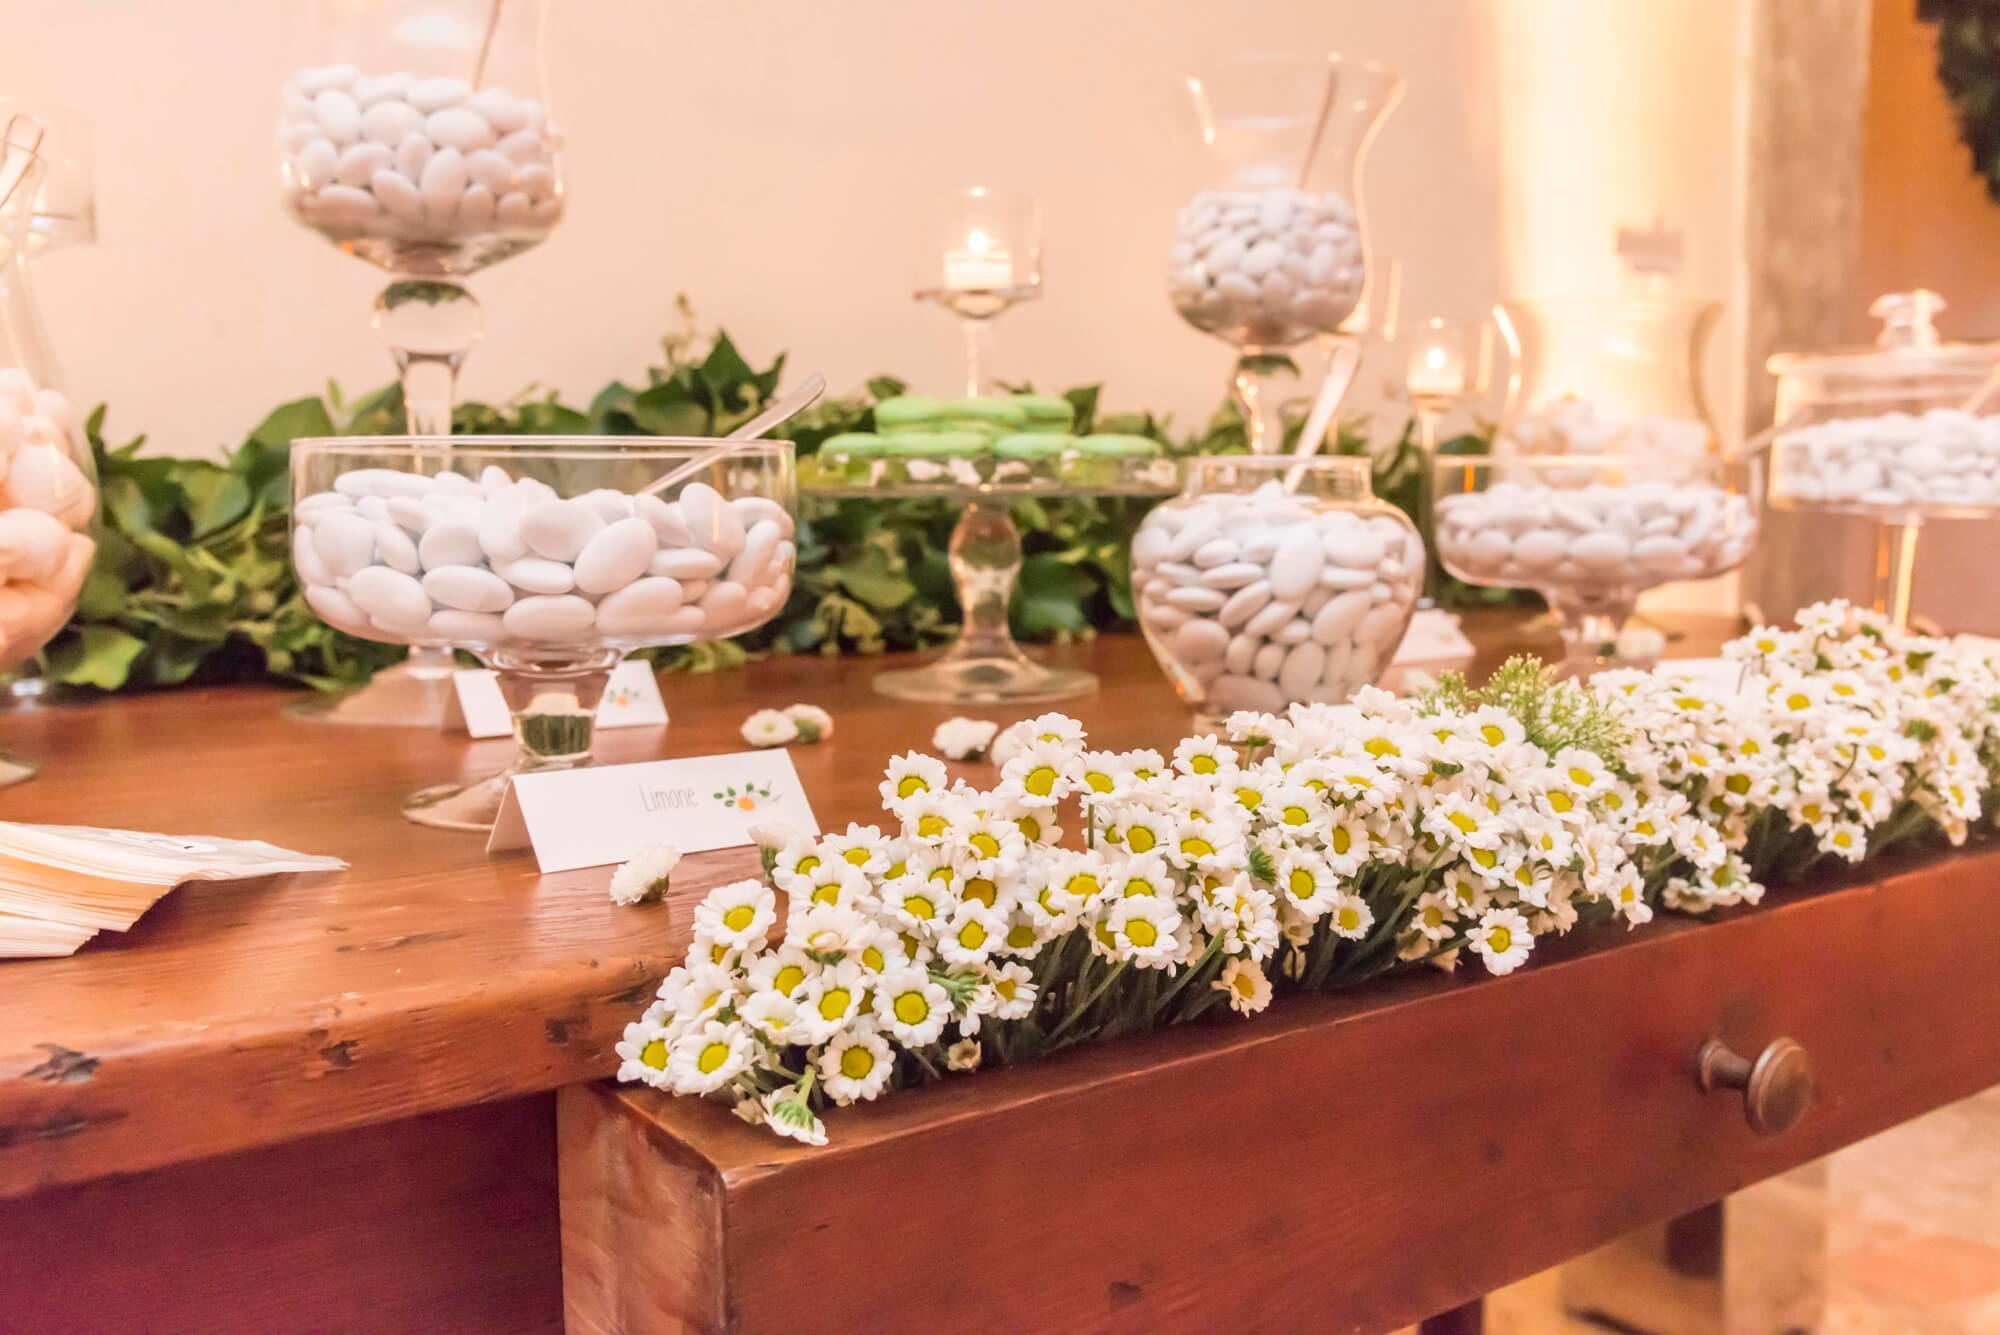 Wedding Favors and Confetti in Tuscany, The tradition of offering wedding gifts to the guests, Italians call them Bomboniere.